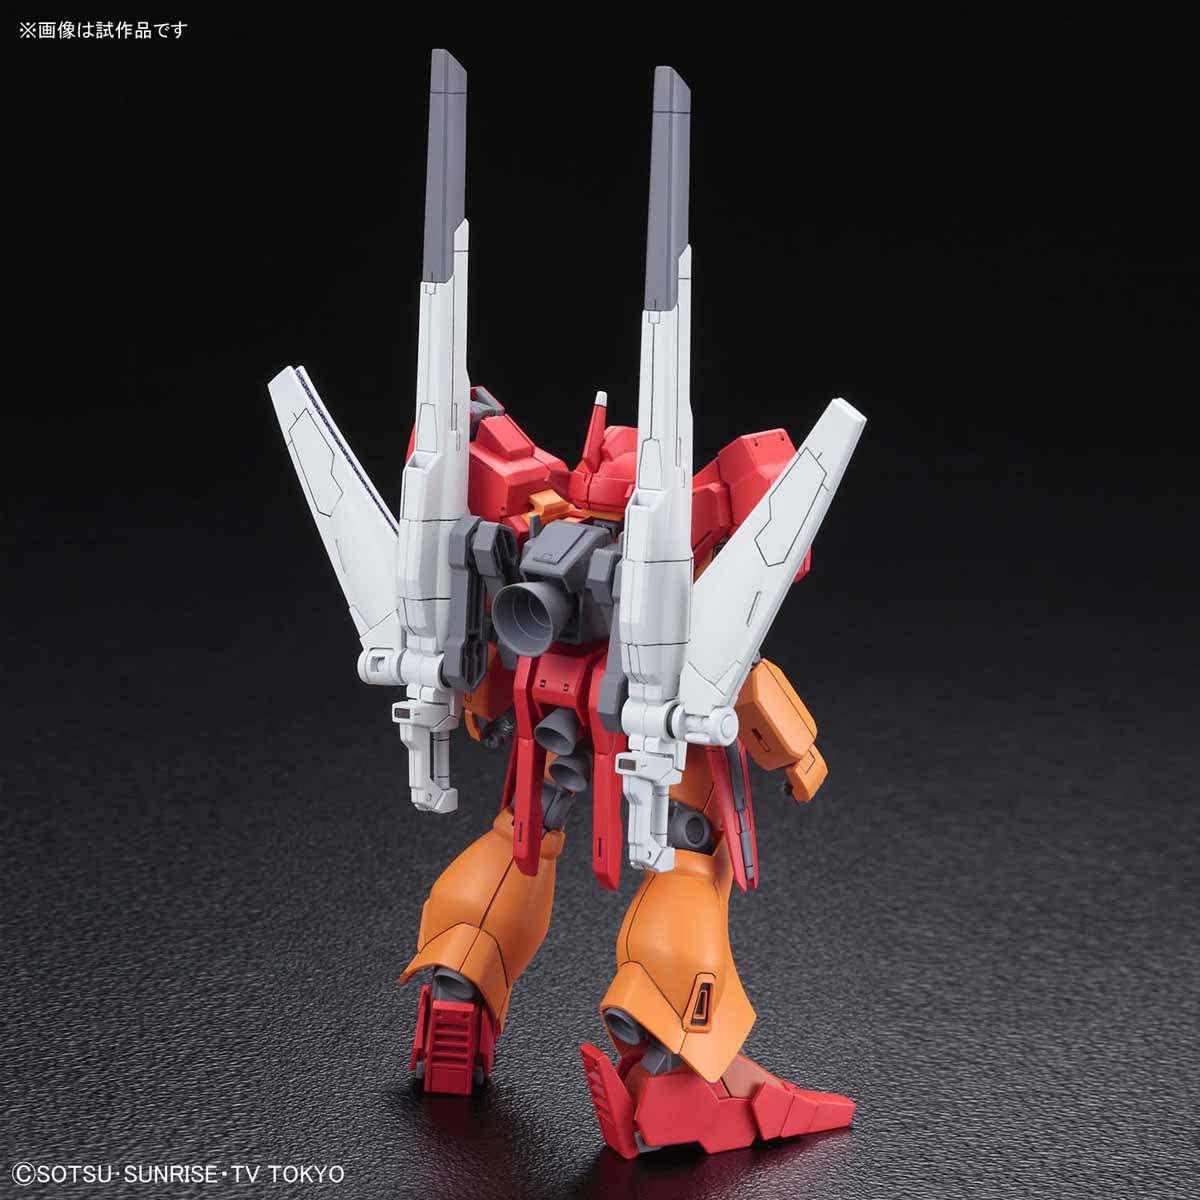 HGBD 1/144 Jegan Blast Master - Release Info - Gundam Kits Collection News and Reviews